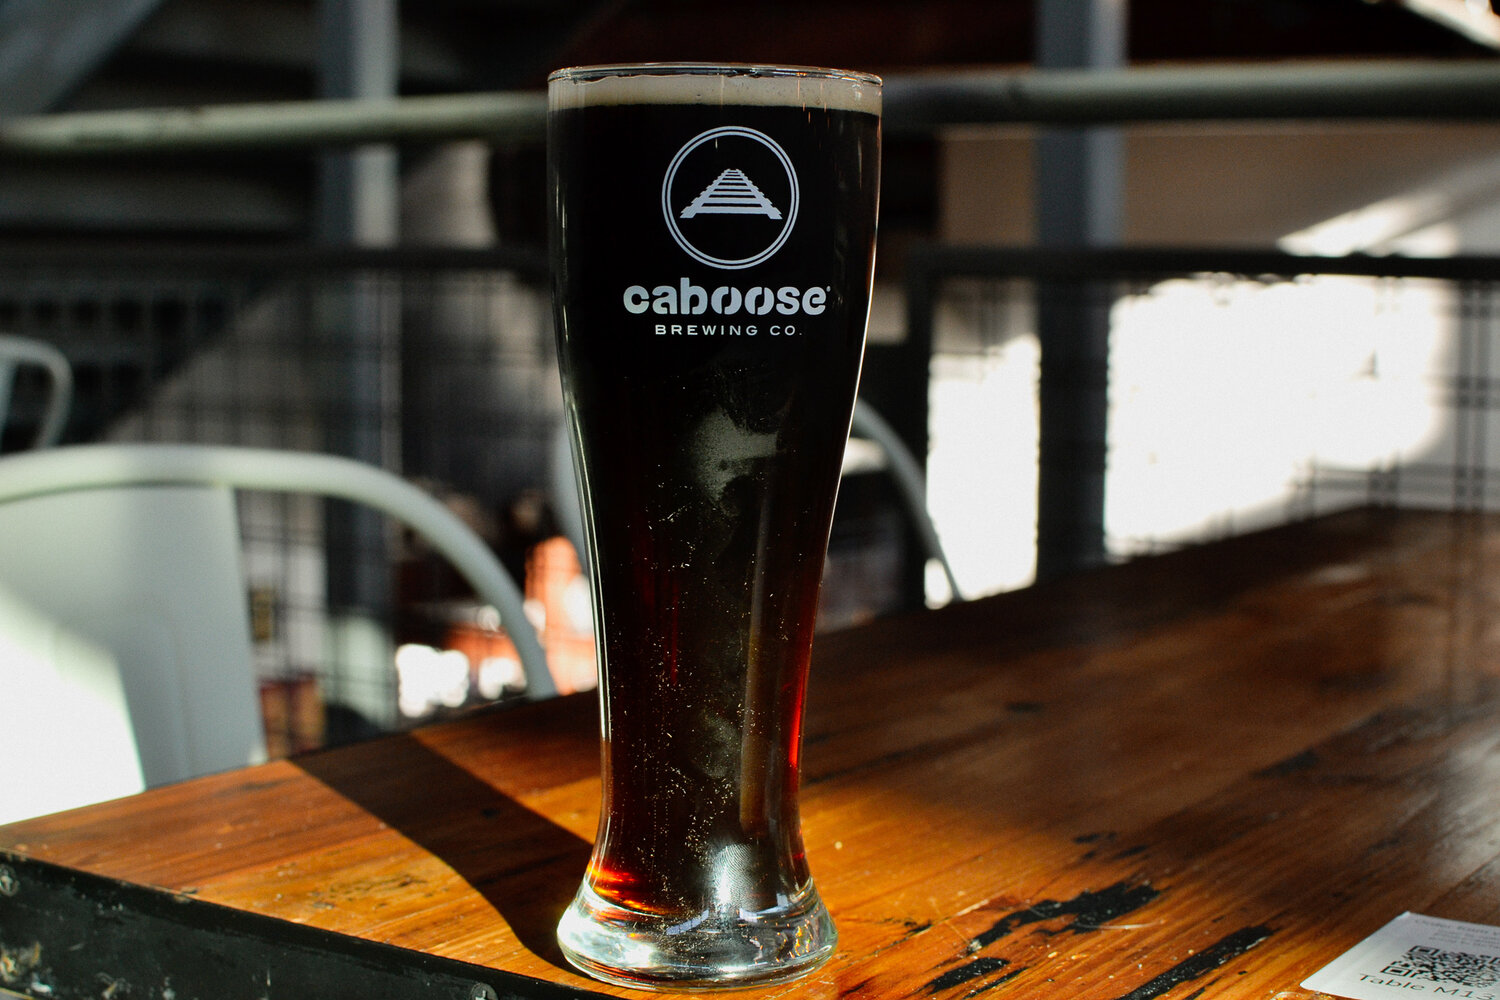 German Black Lager | 4.7% ABV | IBU 37 | Smooth Chocolate Notes, Rich, Roasted Malt, Subtle Cherry Wood Smoke Finish